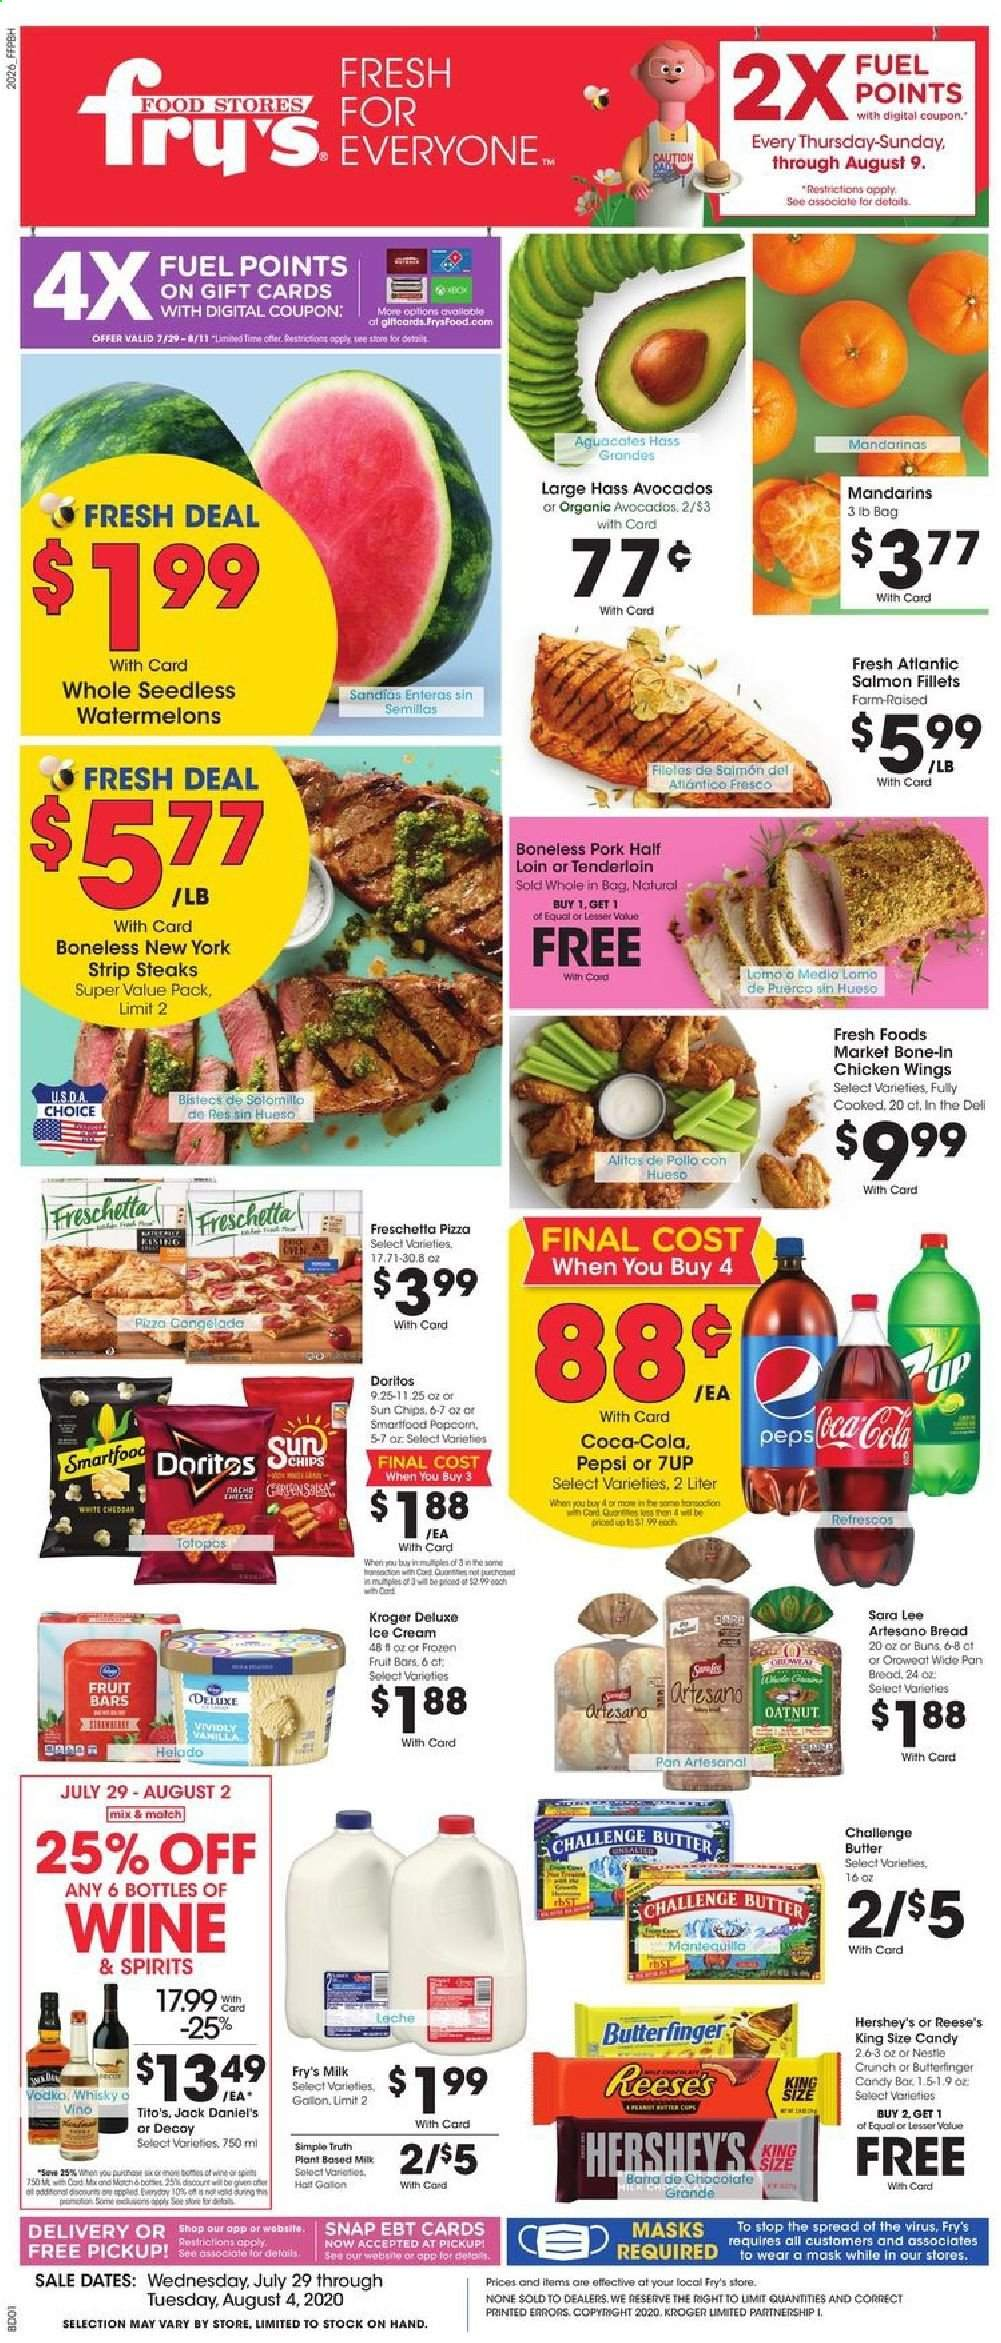 Fry's Flyer - 07.29.2020 - 08.04.2020 - Sales products - avocado, bread, cod, salmon, pizza, milk, butter, ice cream, Nestlé, chocolate, candy, Doritos, chips, Smartfood, Coca-Cola, Pepsi, wine, Jack Daniel's, chicken, chicken wings, pork meat, pan, Frozen, mask. Page 1.